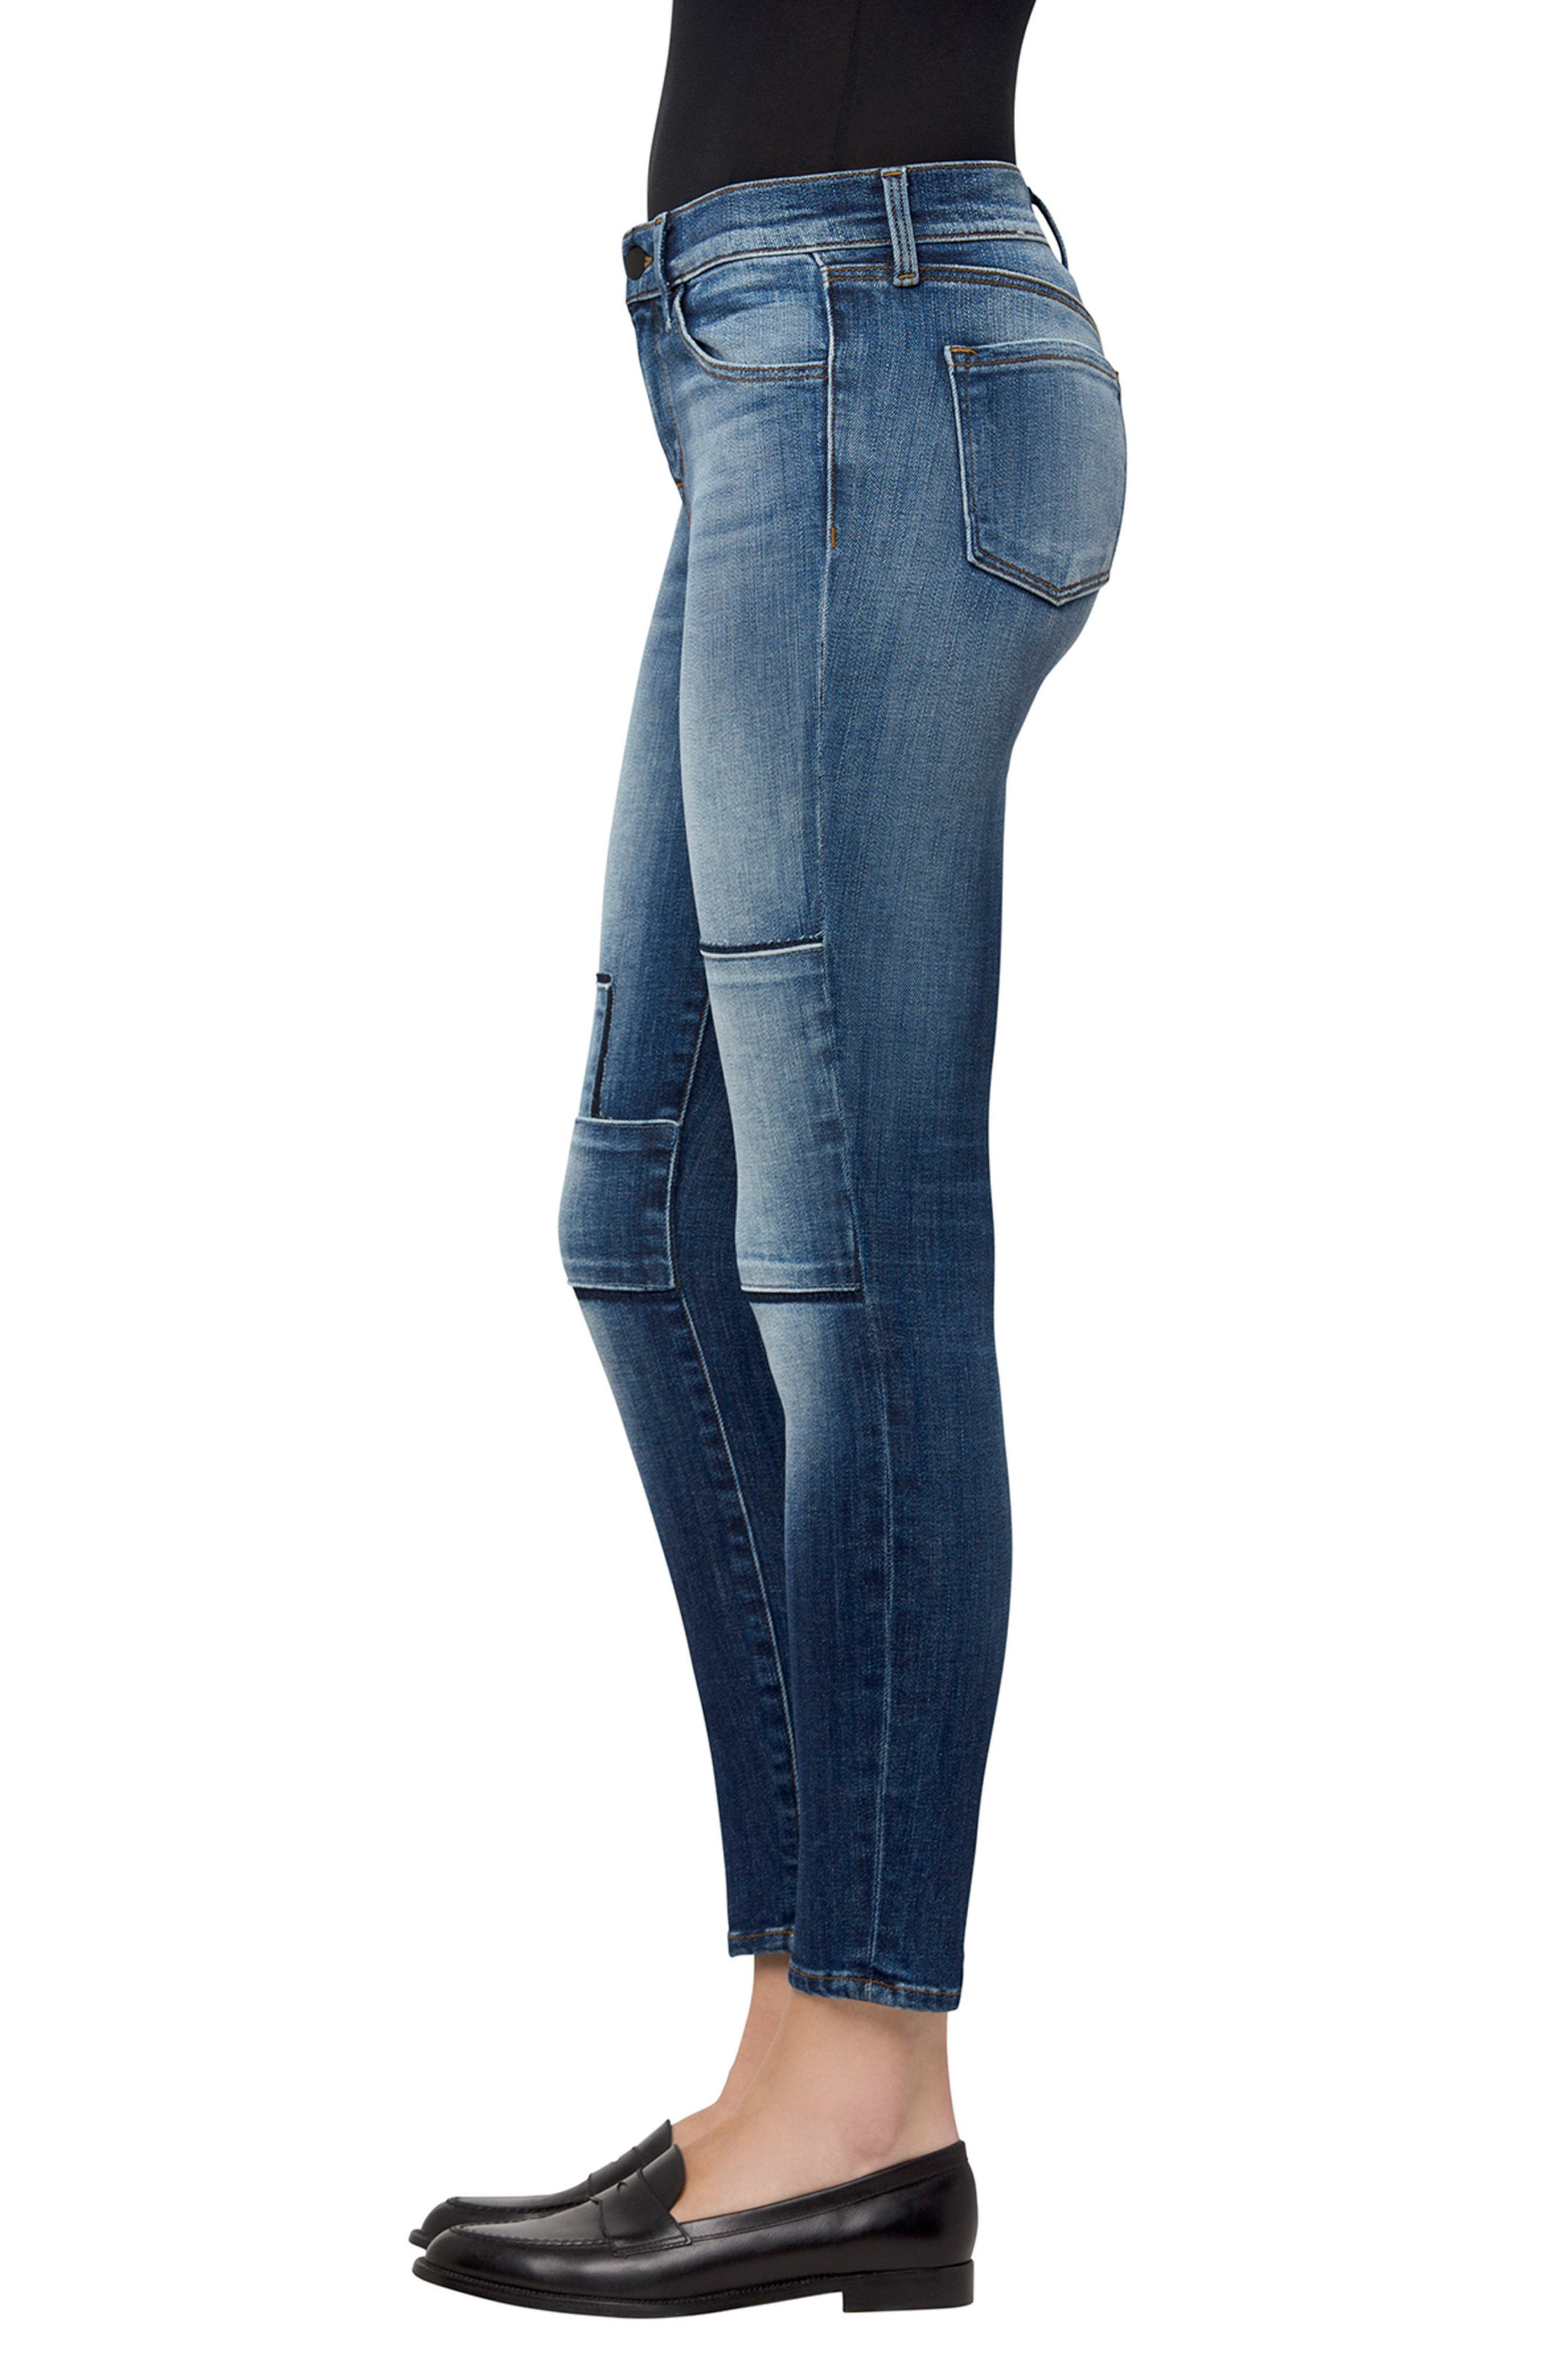 835 Crop Skinny Jeans,                             Alternate thumbnail 3, color,                             Jasper Patched